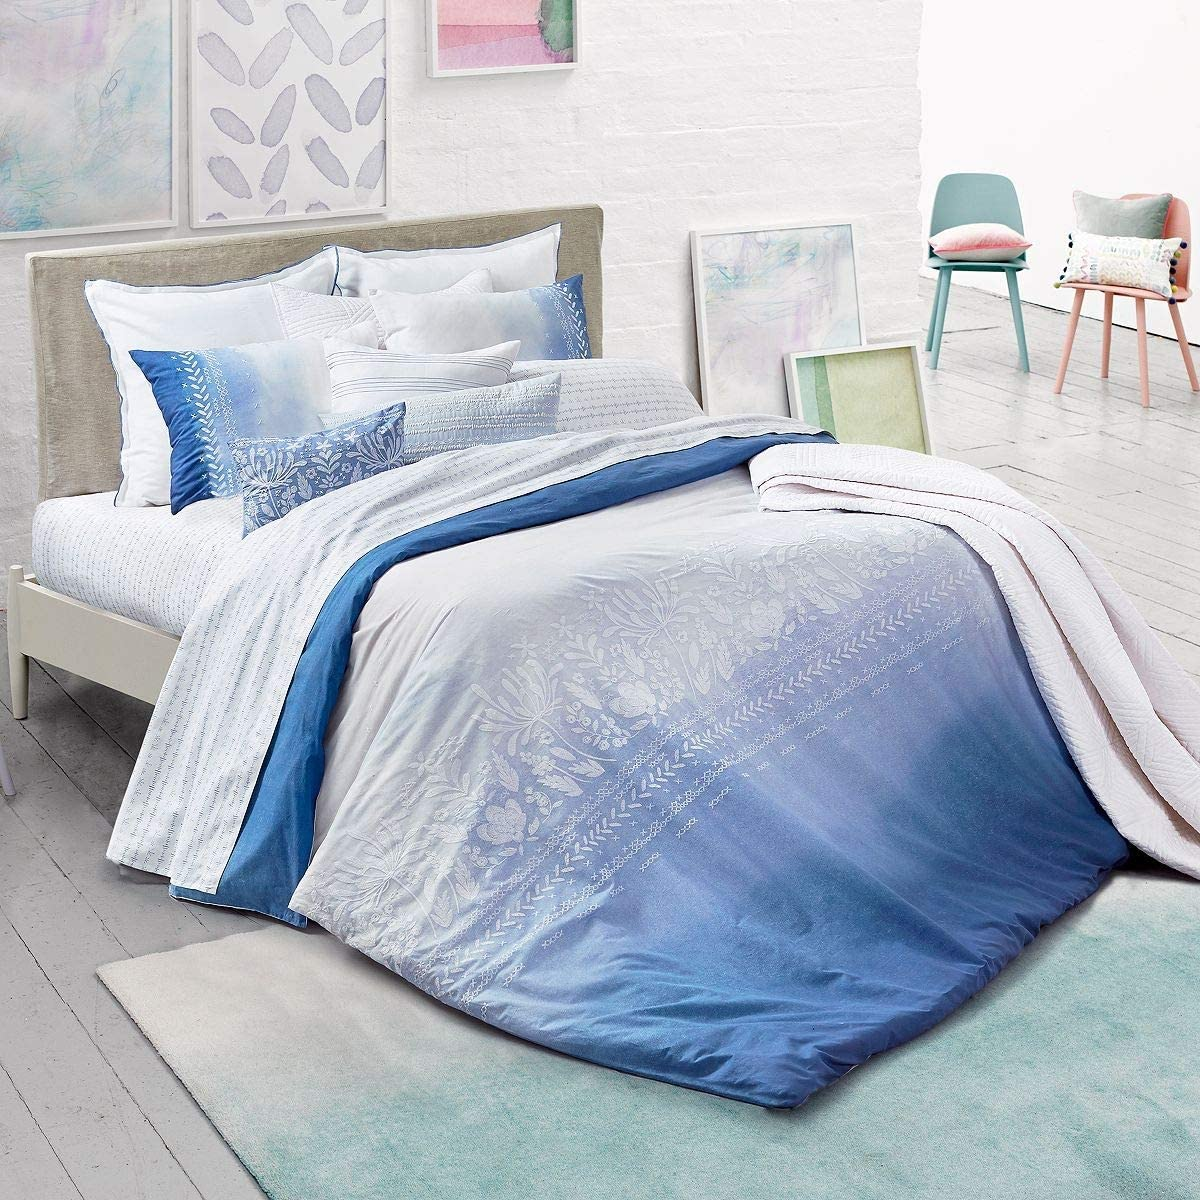 Bluebellgray NEW before selling ☆ Paintbox Nashville-Davidson Mall Embroidered Duvet Cover Twin Set XL